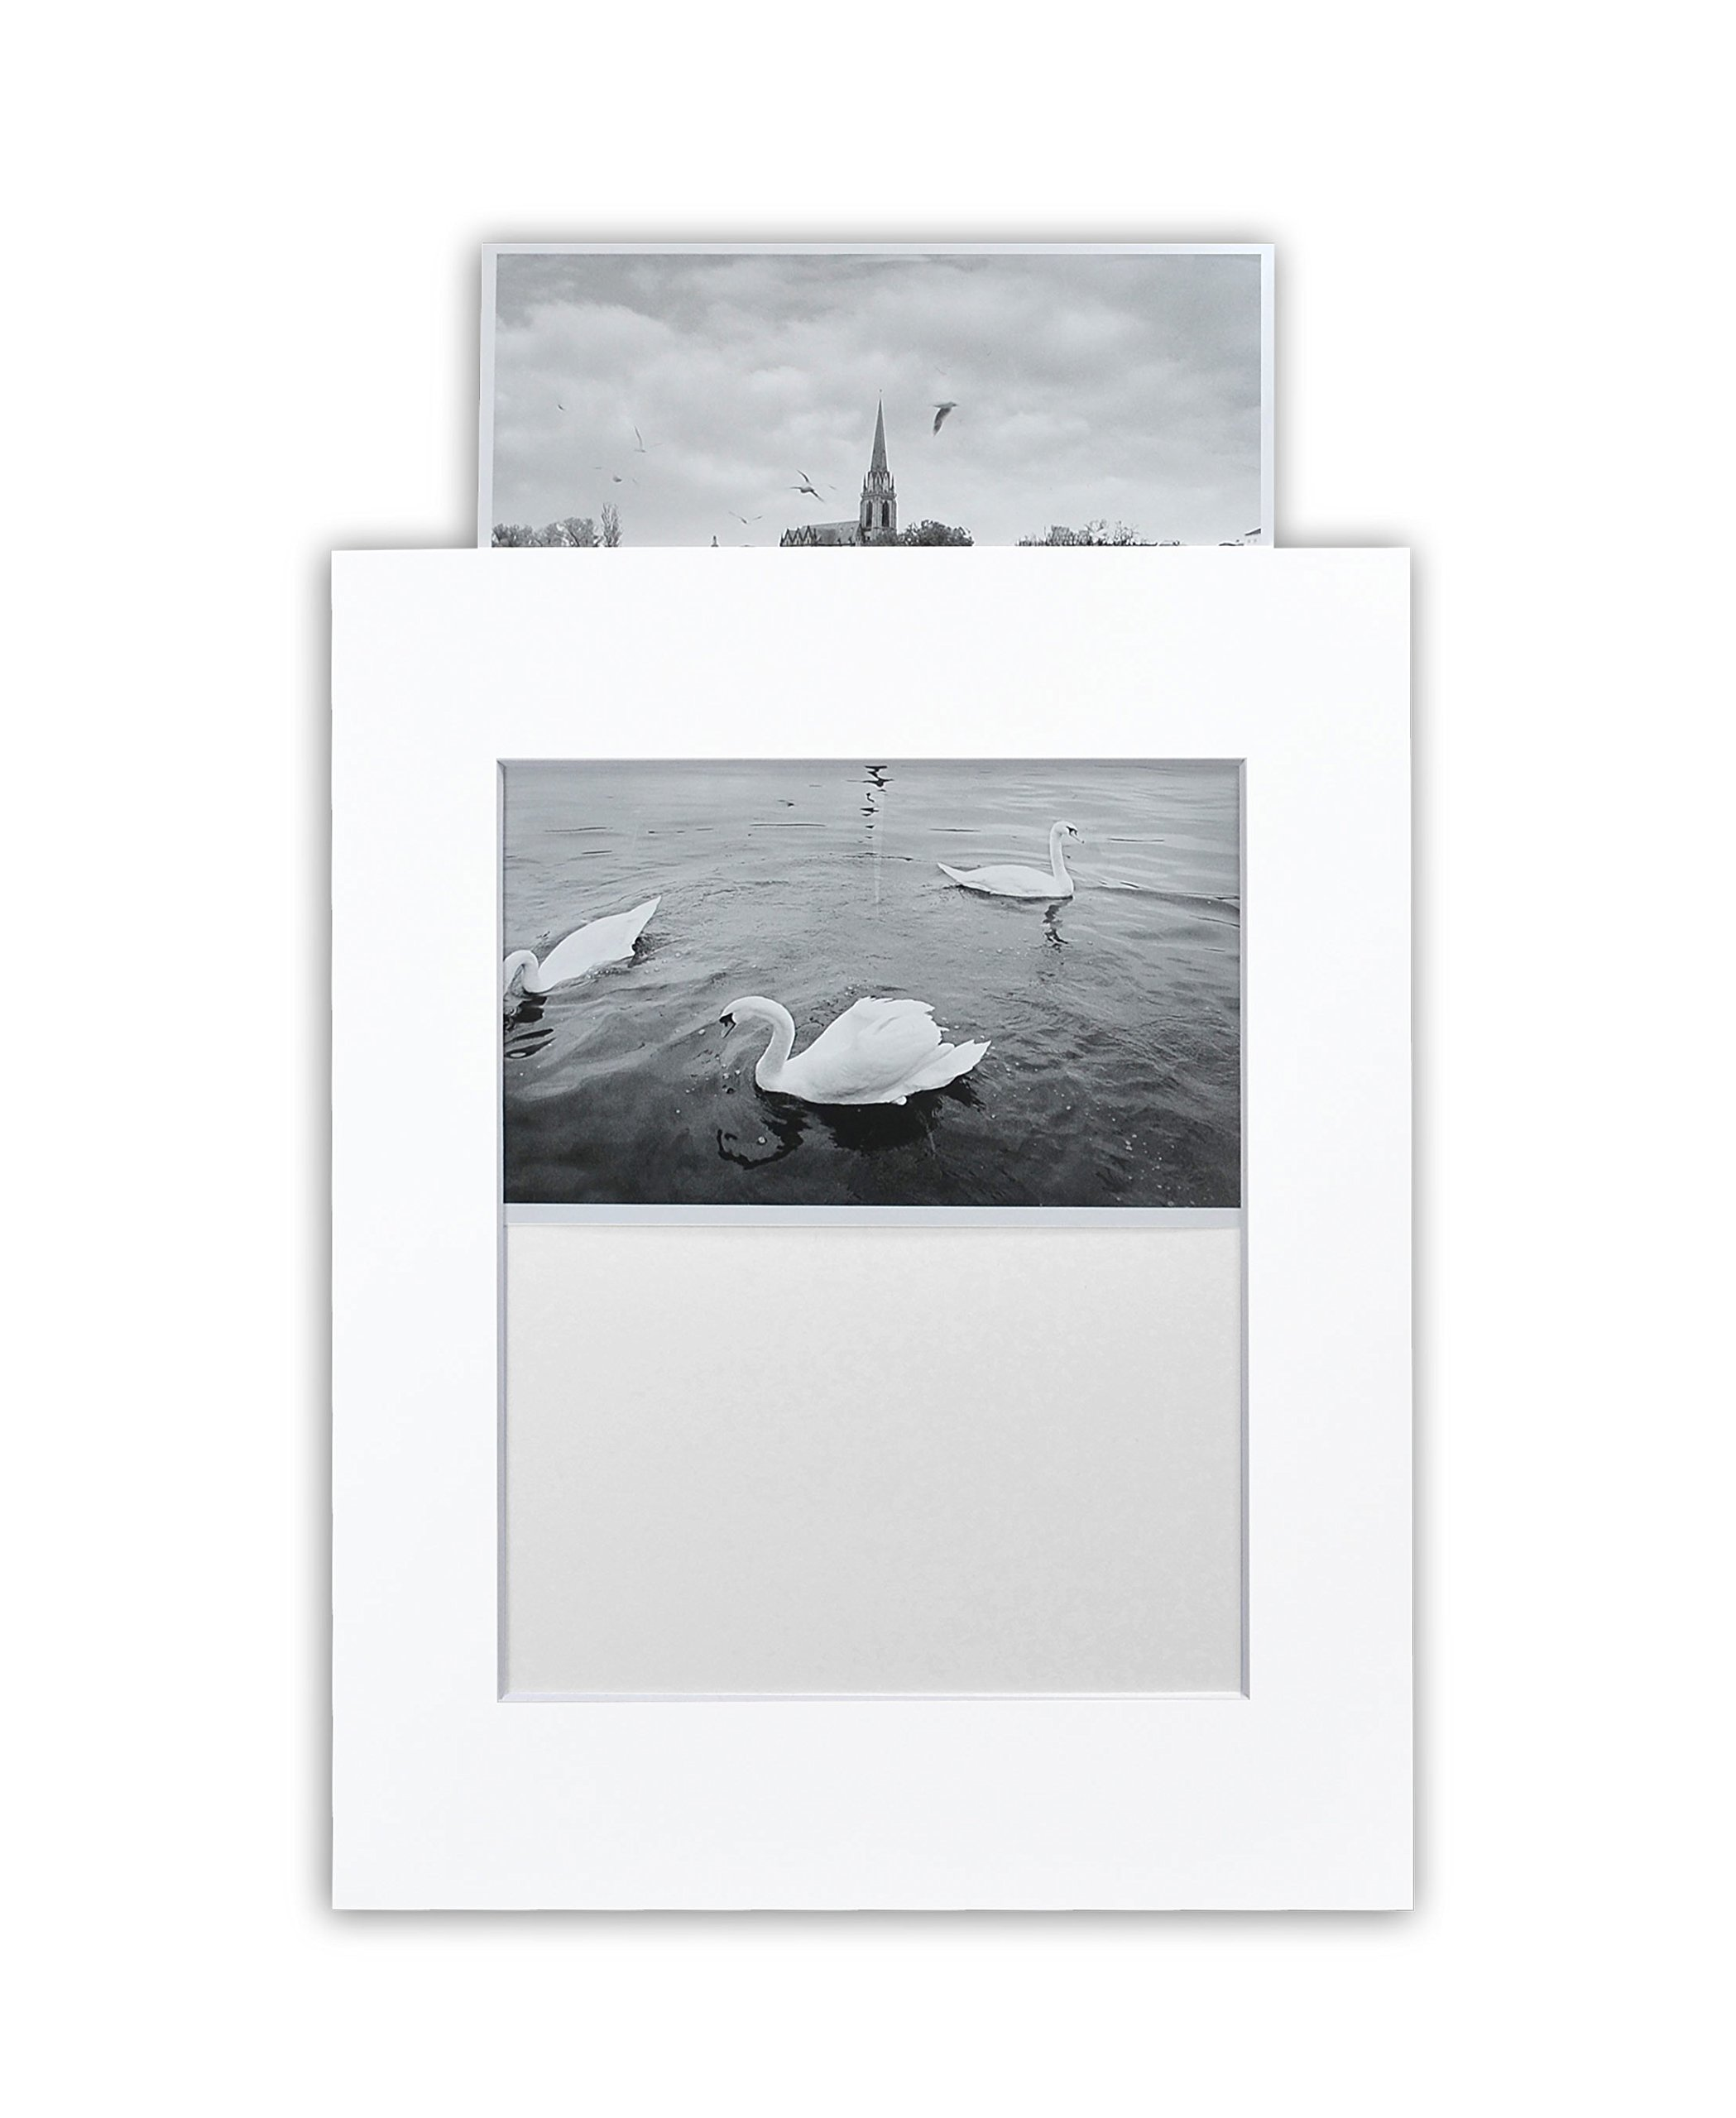 Golden State Art, Pack of 25 White 11x14 Slip-in Pre-adhesive Photo Mat for 8x10 picture with backing board pre-assembled, Includes 25 clear bags